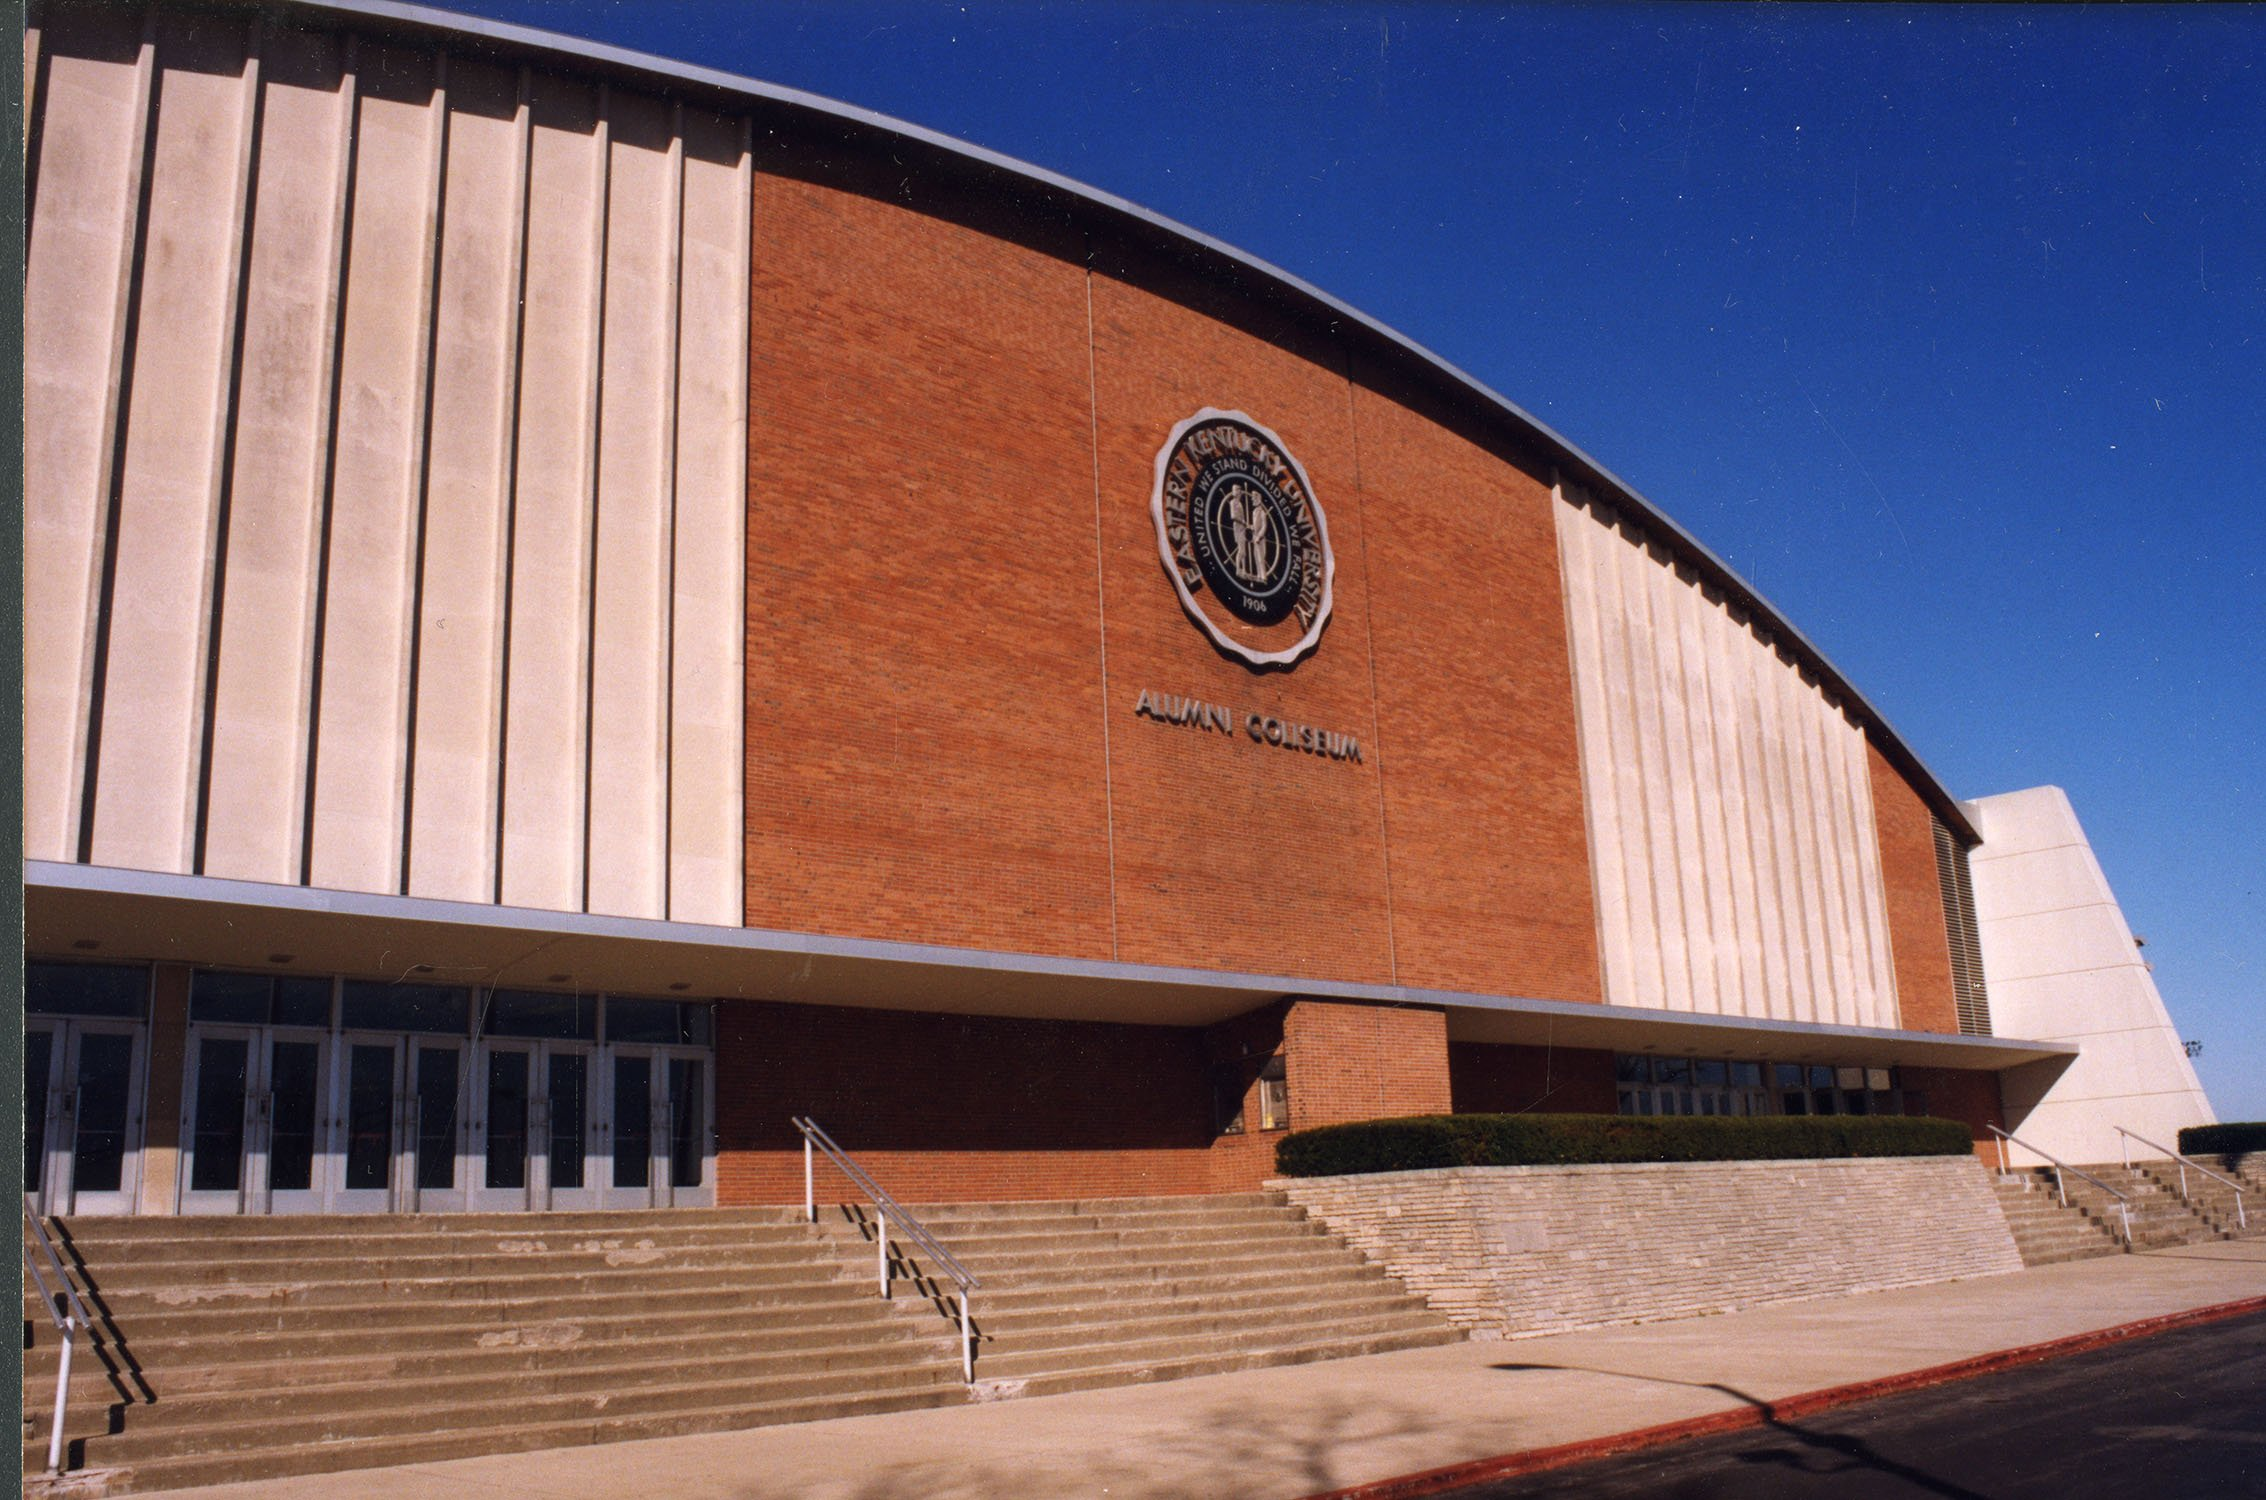 Alumni Coliseum exterior, ca. 2000. EKU Photograph Collection.